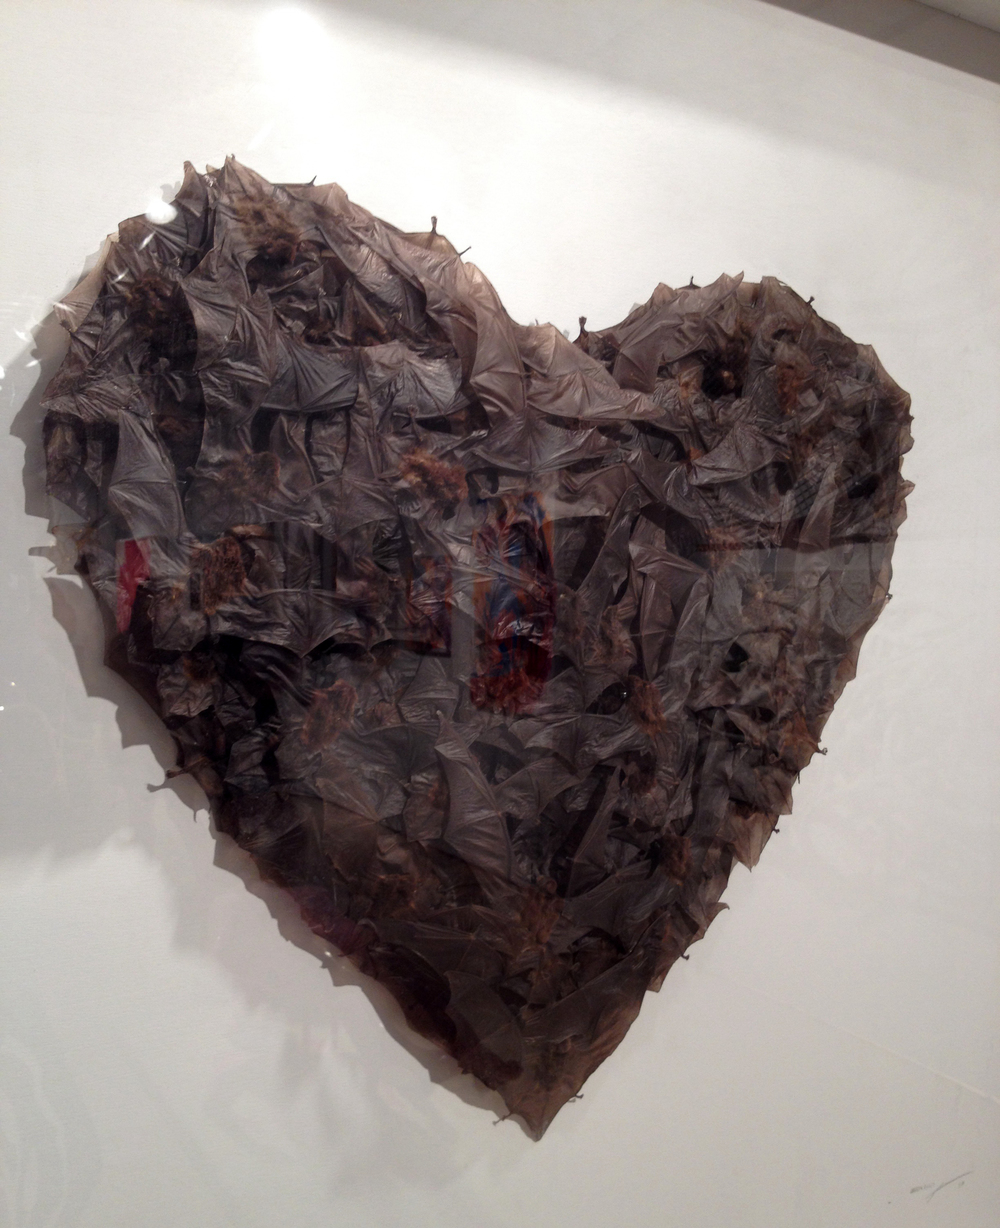 This heart made of taxidermy bats was pretty spectacular.